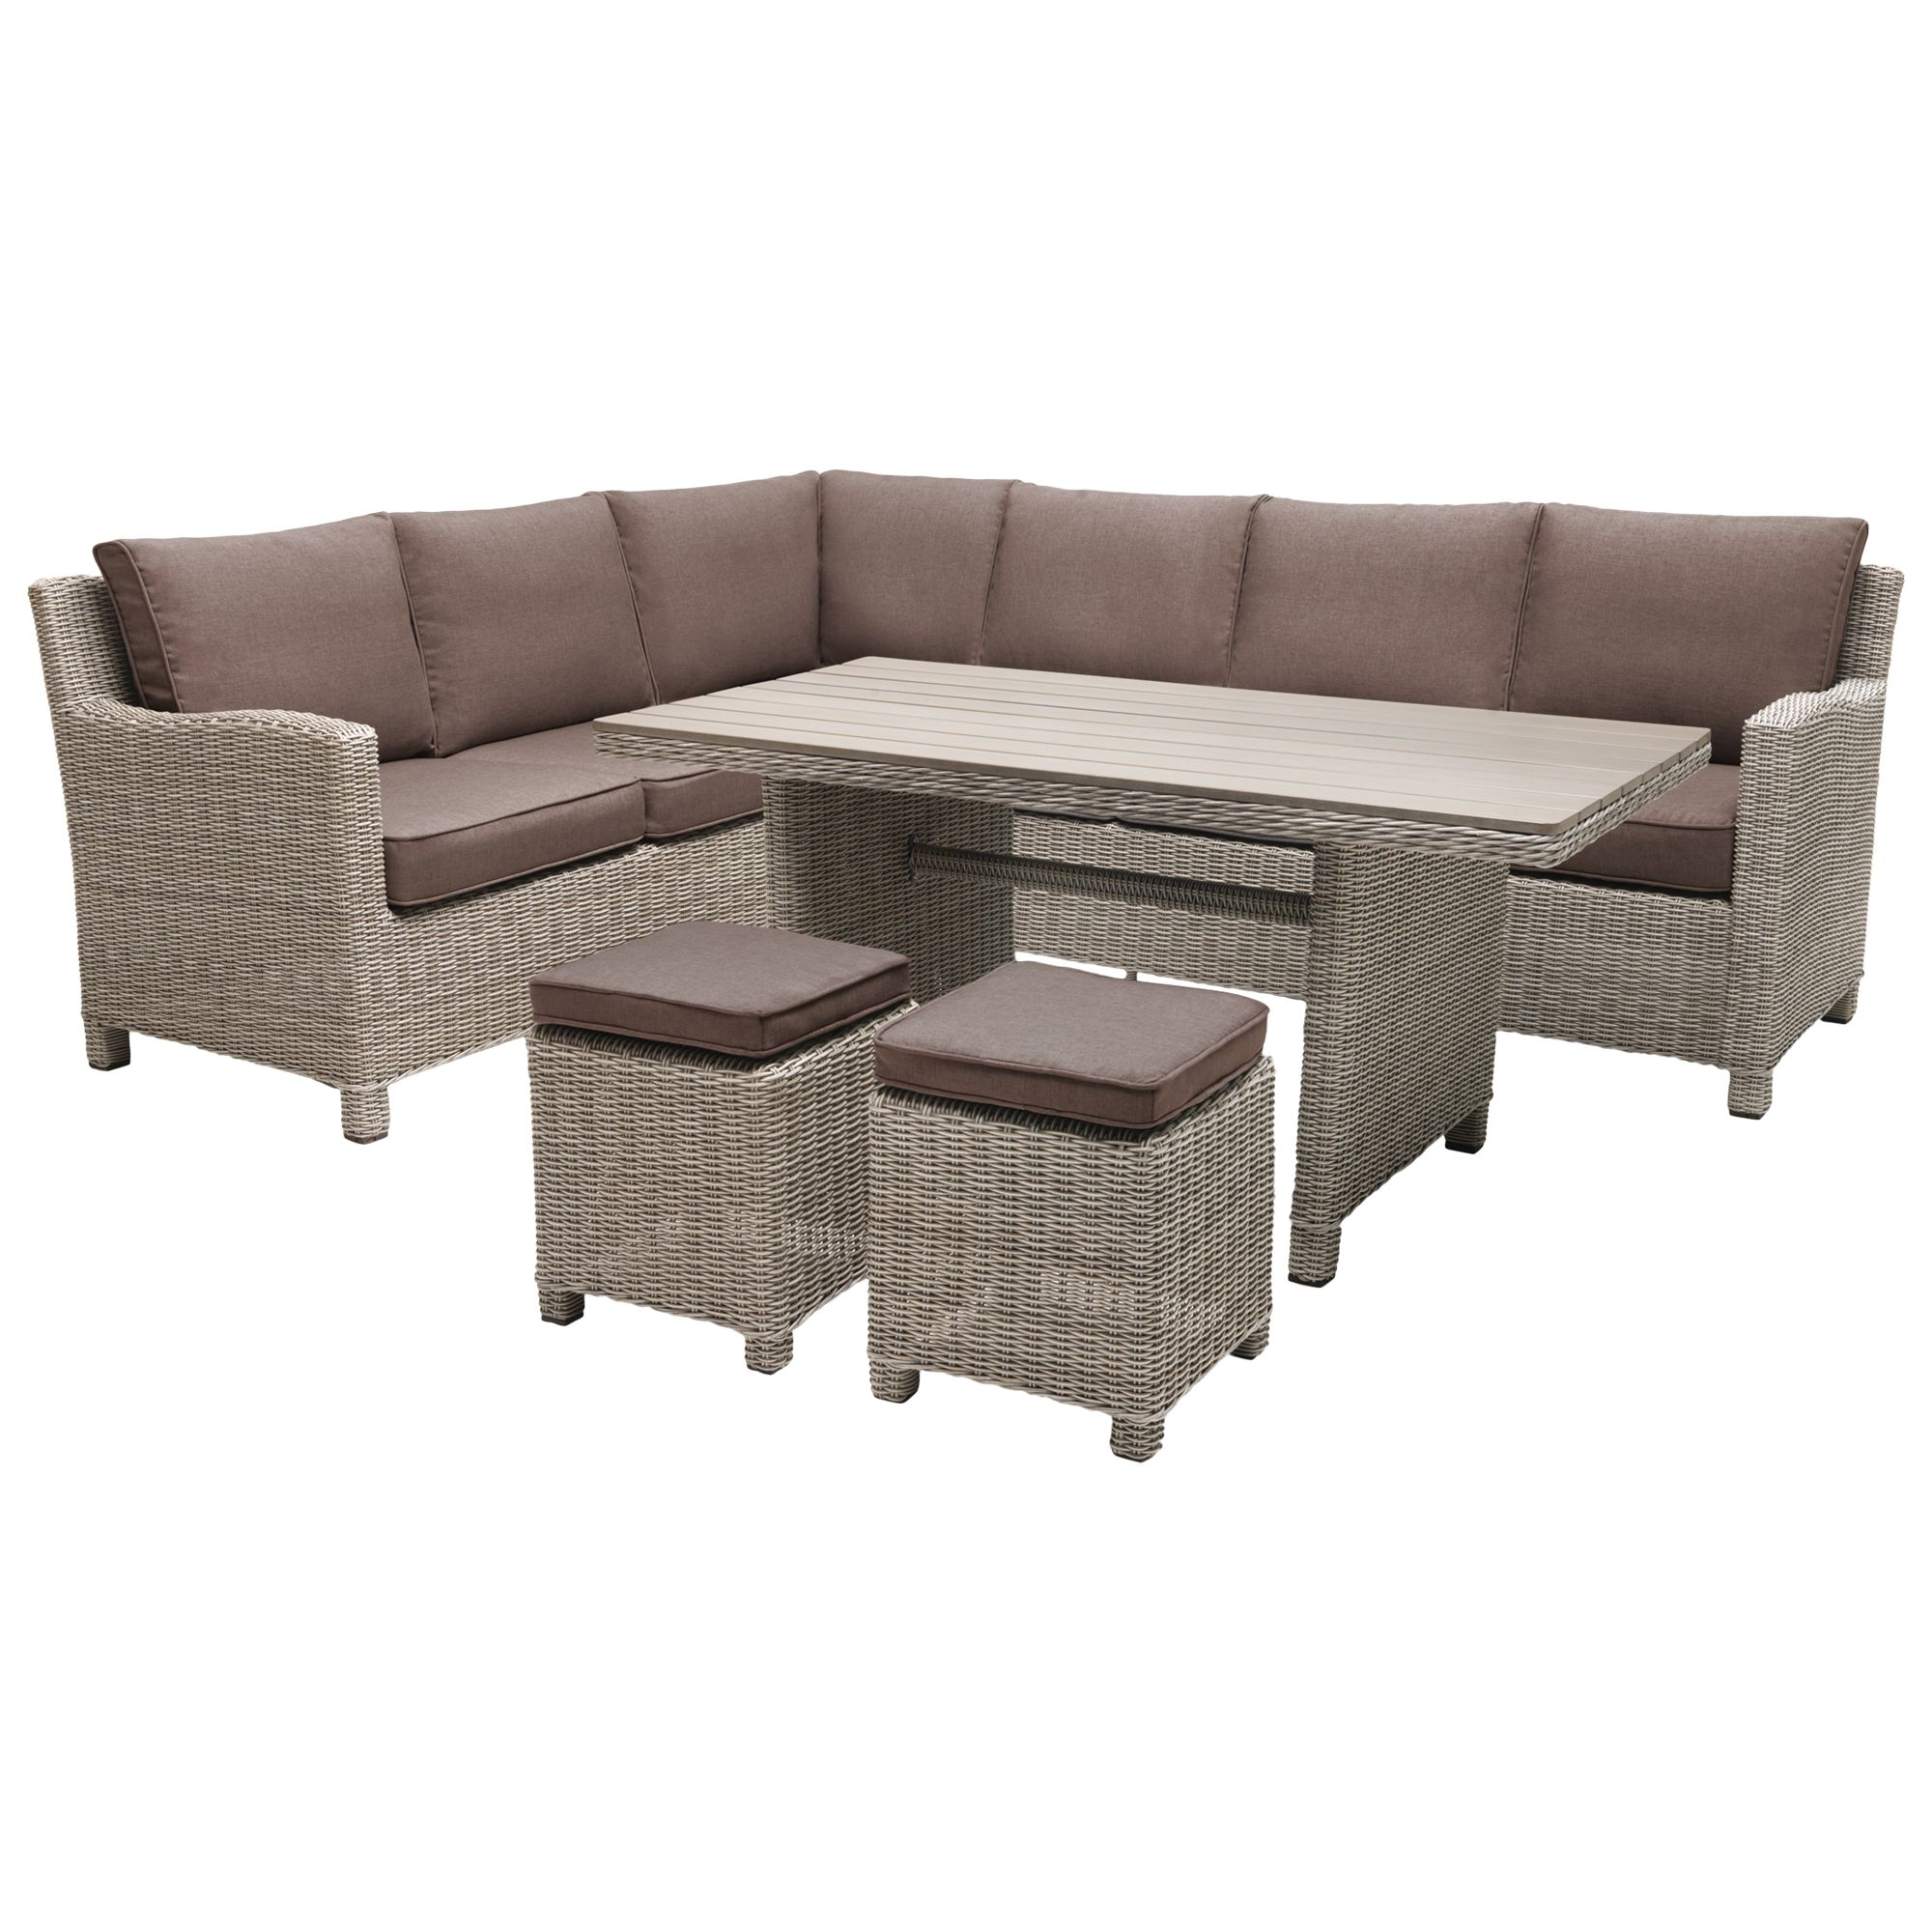 Kettler Palma 8 Seater Outdoor Lounge Set